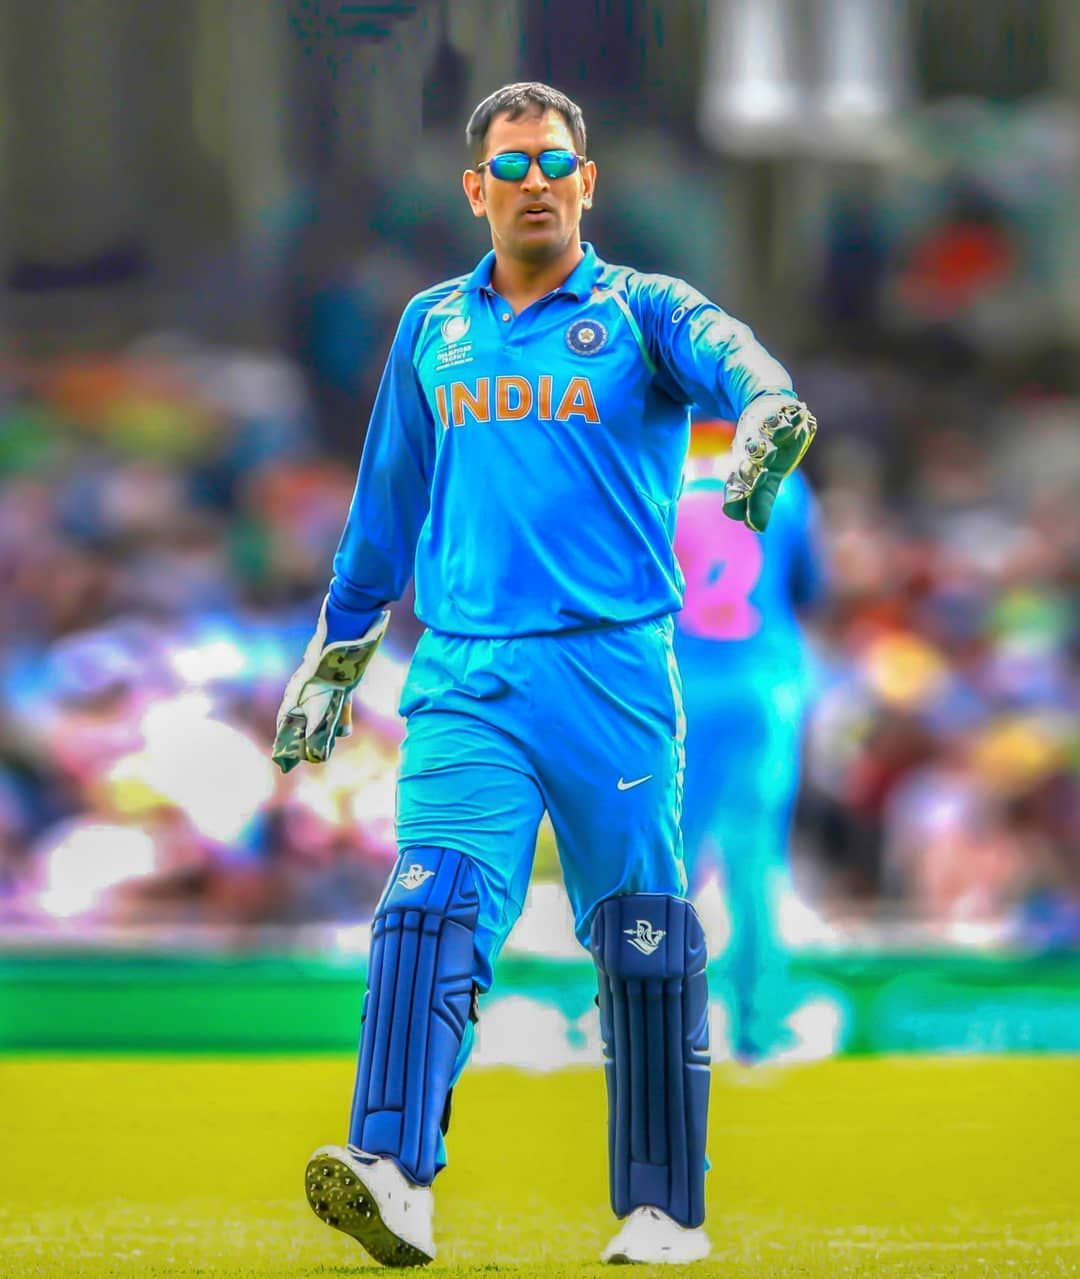 12 5k Likes 27 Comments Ms Dhoni Inspirations Ms Dhoni Inspirations On Instagram Excited To See H Ms Dhoni Biography Upcoming Matches Cricket Teams